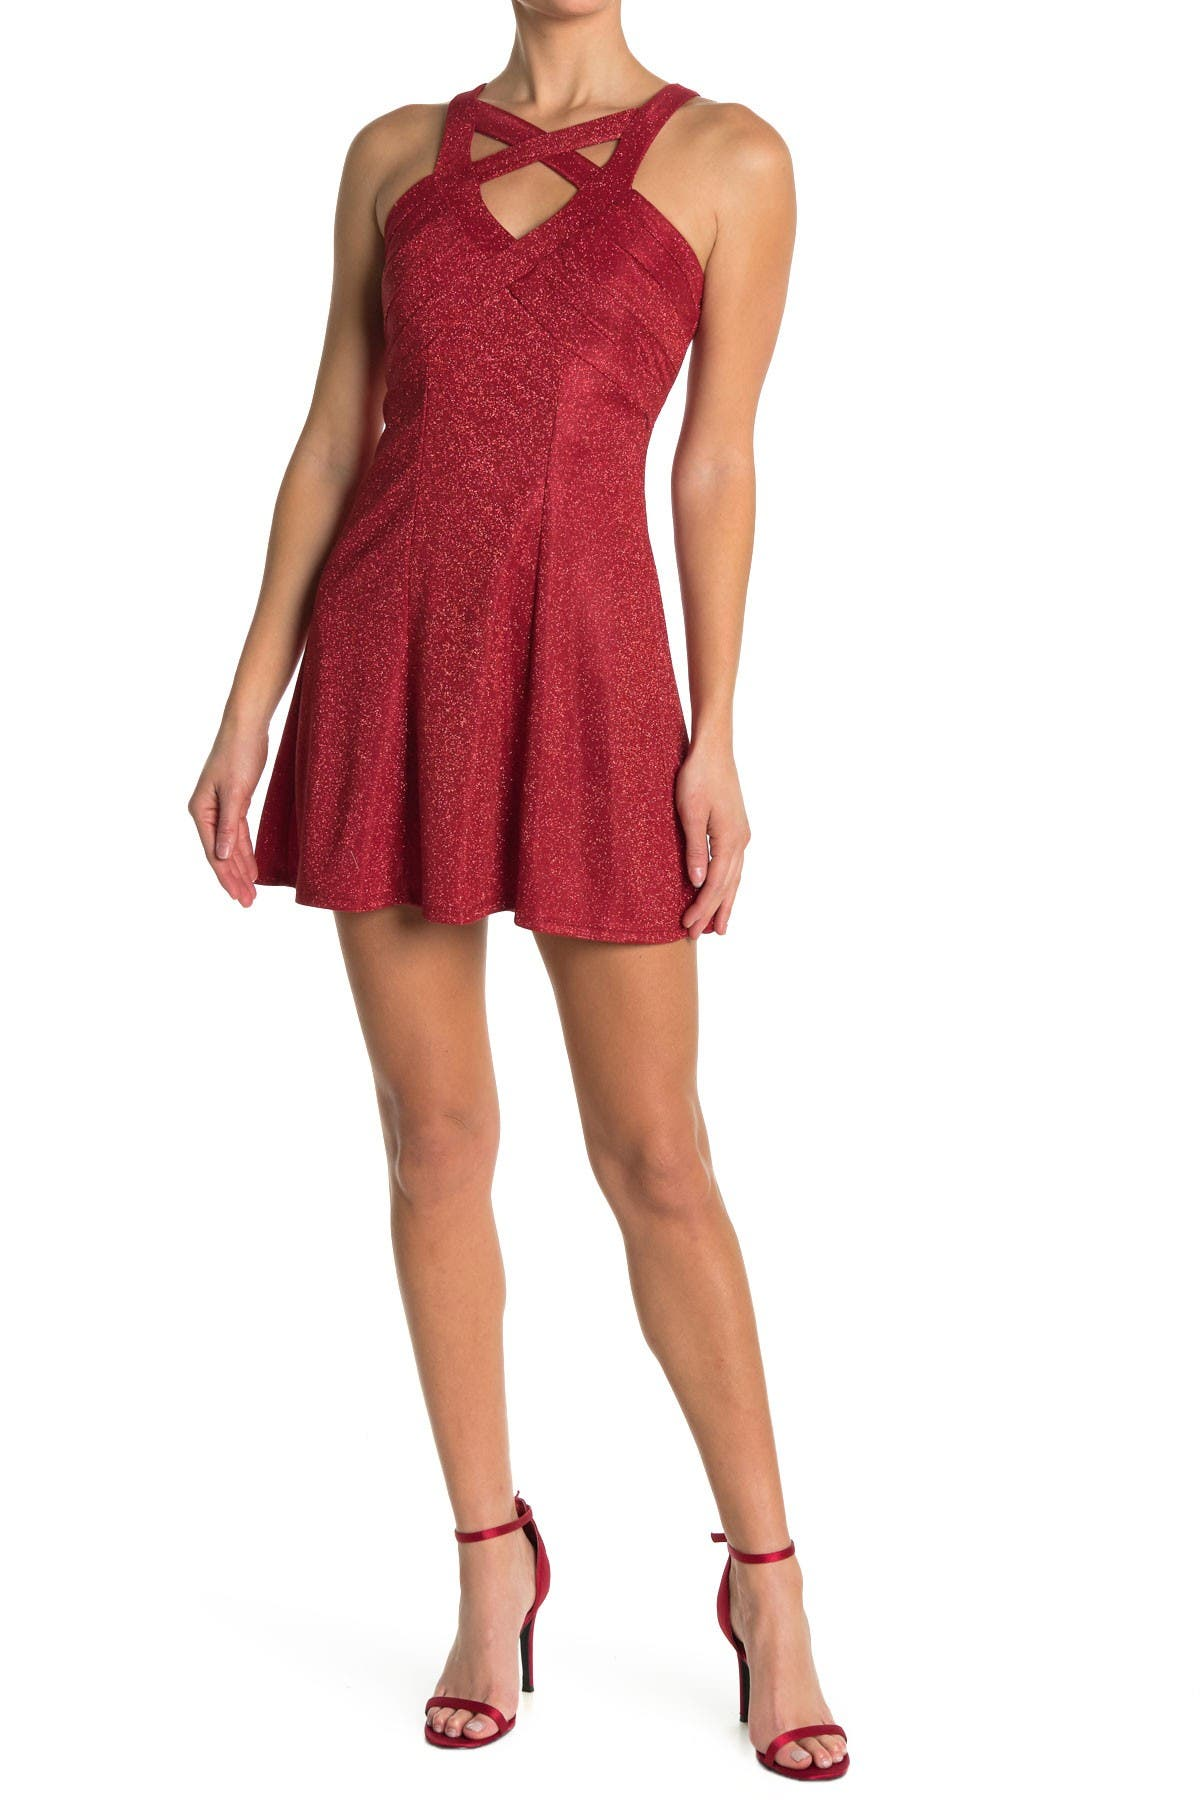 Image of Love, Nickie Lew Glitter Knit X Front Skater Dress